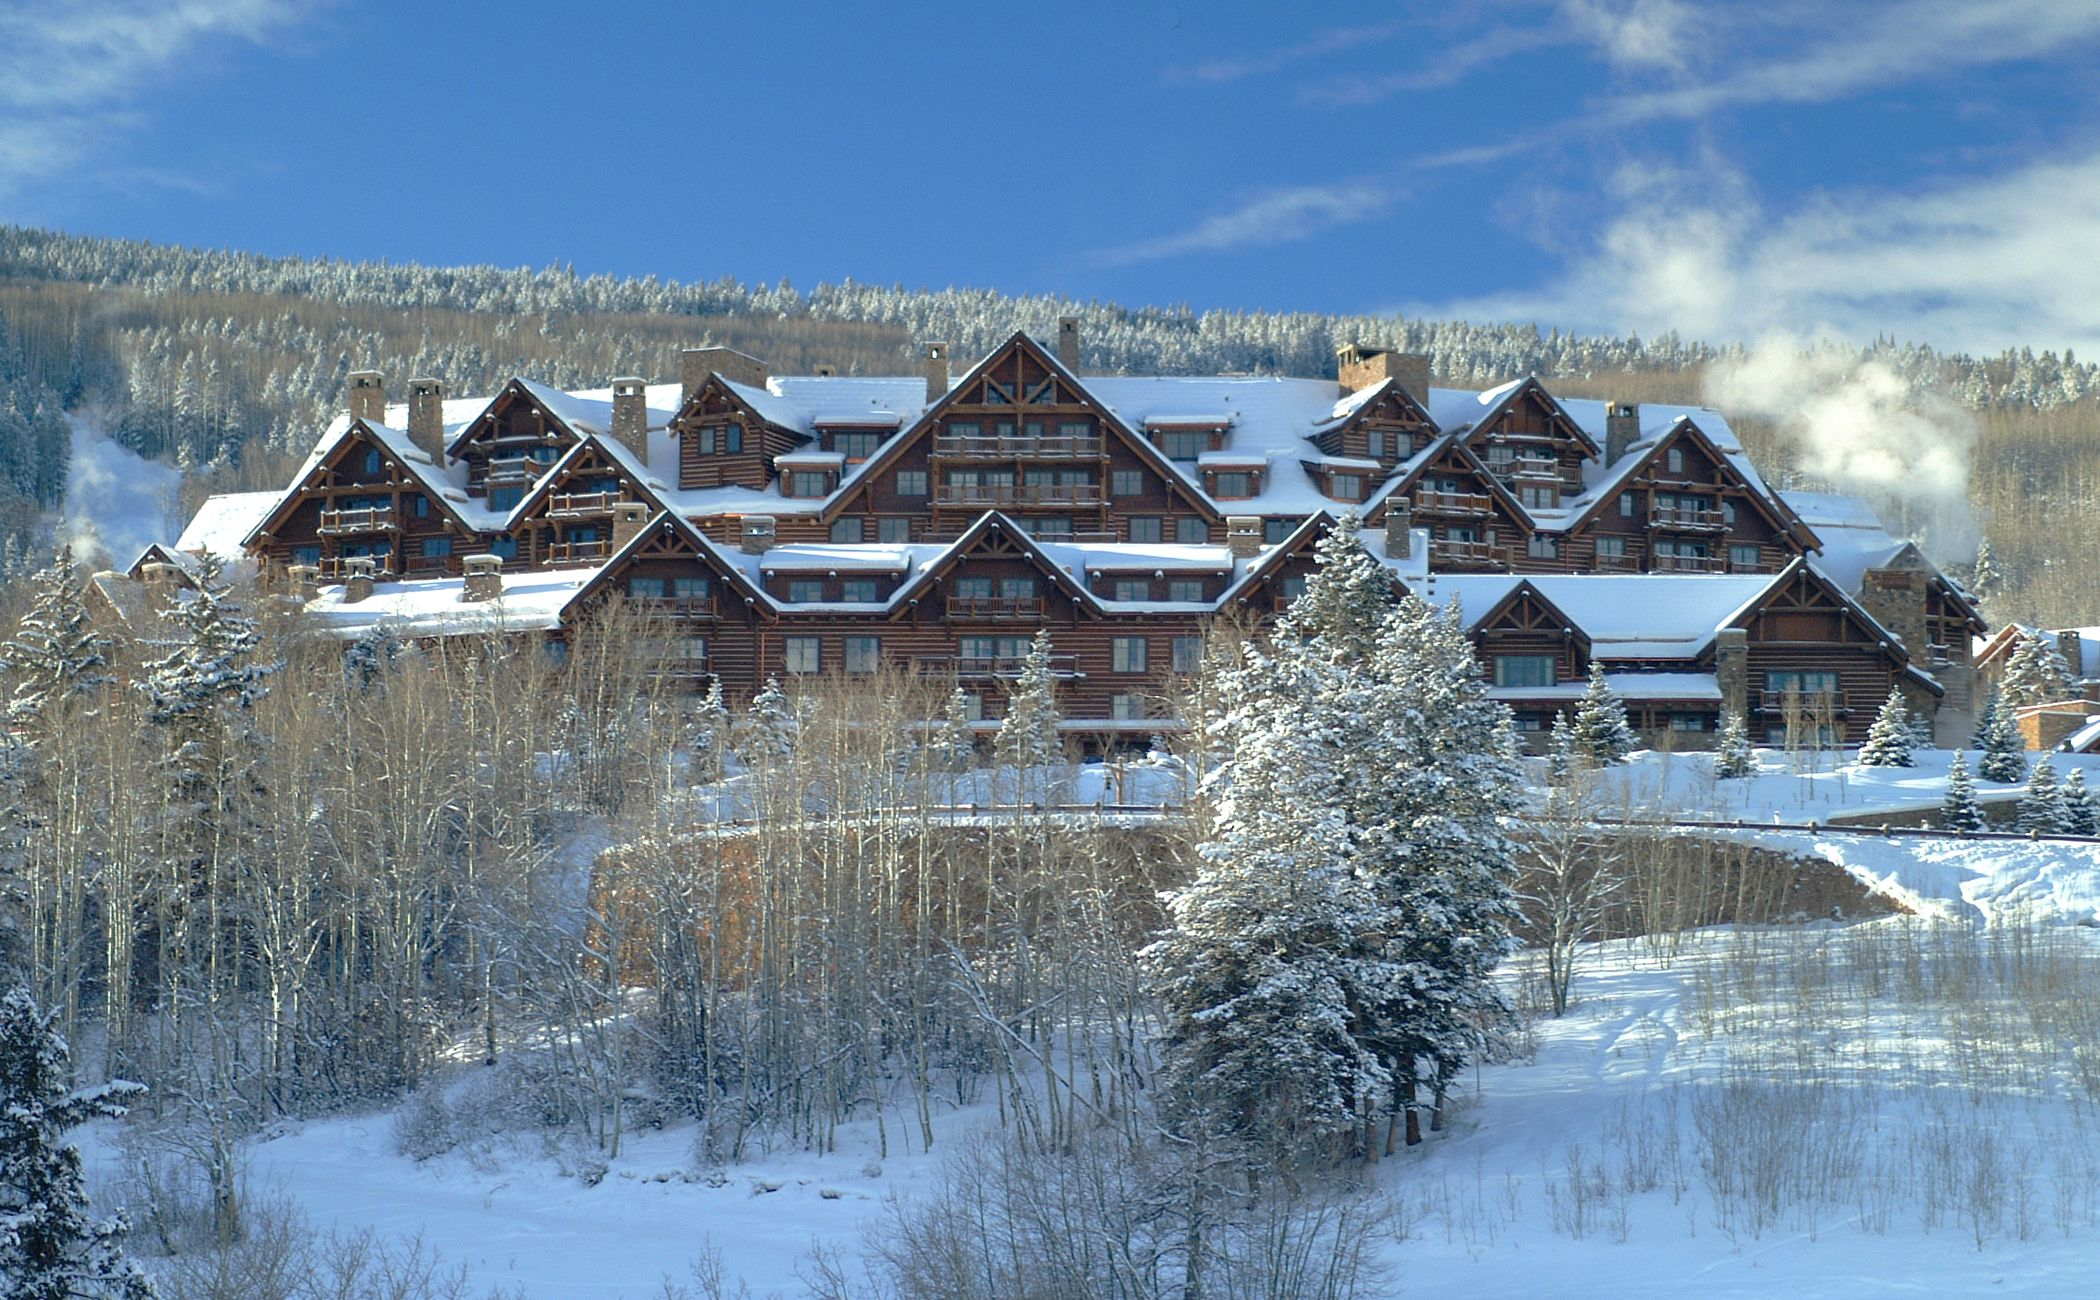 130 Daybreak # HS759 Beaver Creek, CO 81620